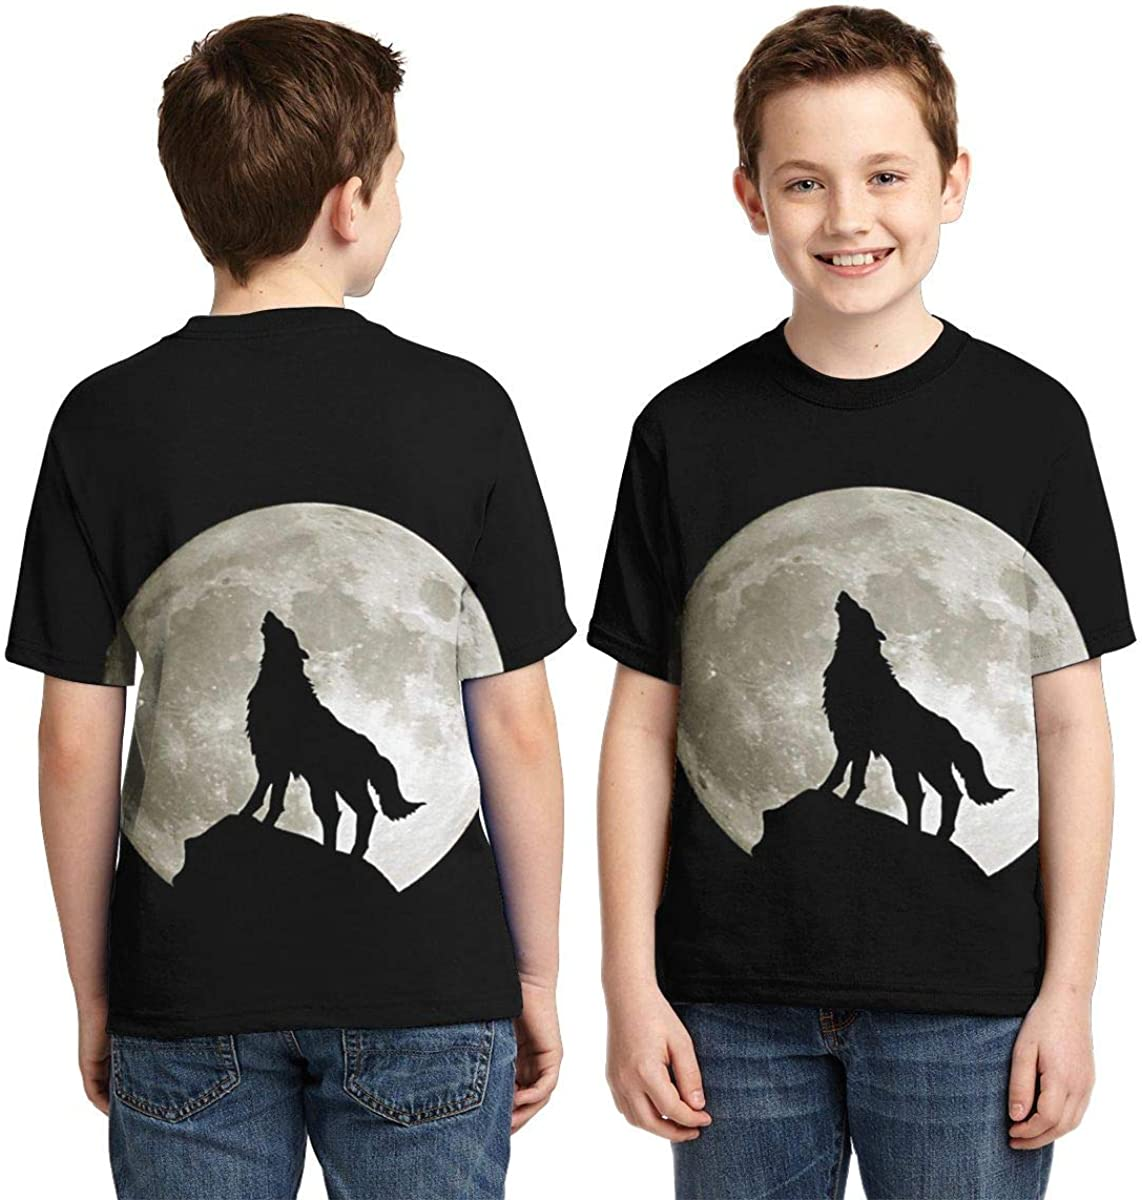 AMODECO Thumb Wolf 3D Printed Tee T-Shirt for Youth Teenager Boys Girls